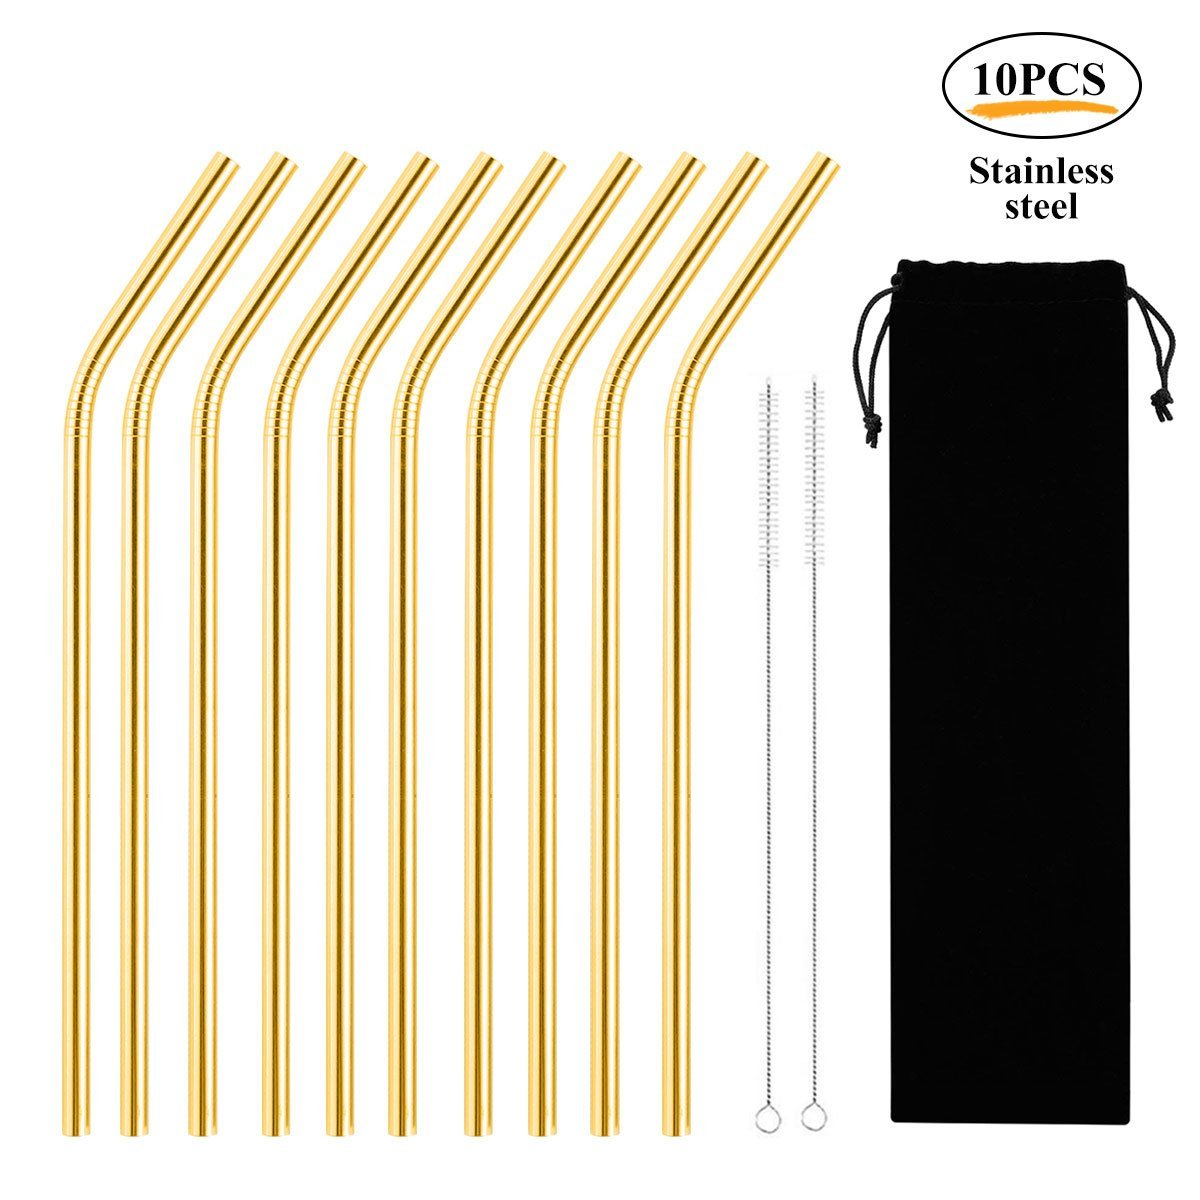 Stainless Steel Straws, LEEGOAL 10Pcs Reusable Straws Metal Drinking Straws Eco-Friendly Long Bent Straws for 20oz Tumblers Cups Mugs Cold Beverage with 2 Cleaning Brushes and Carry Bag, Gold